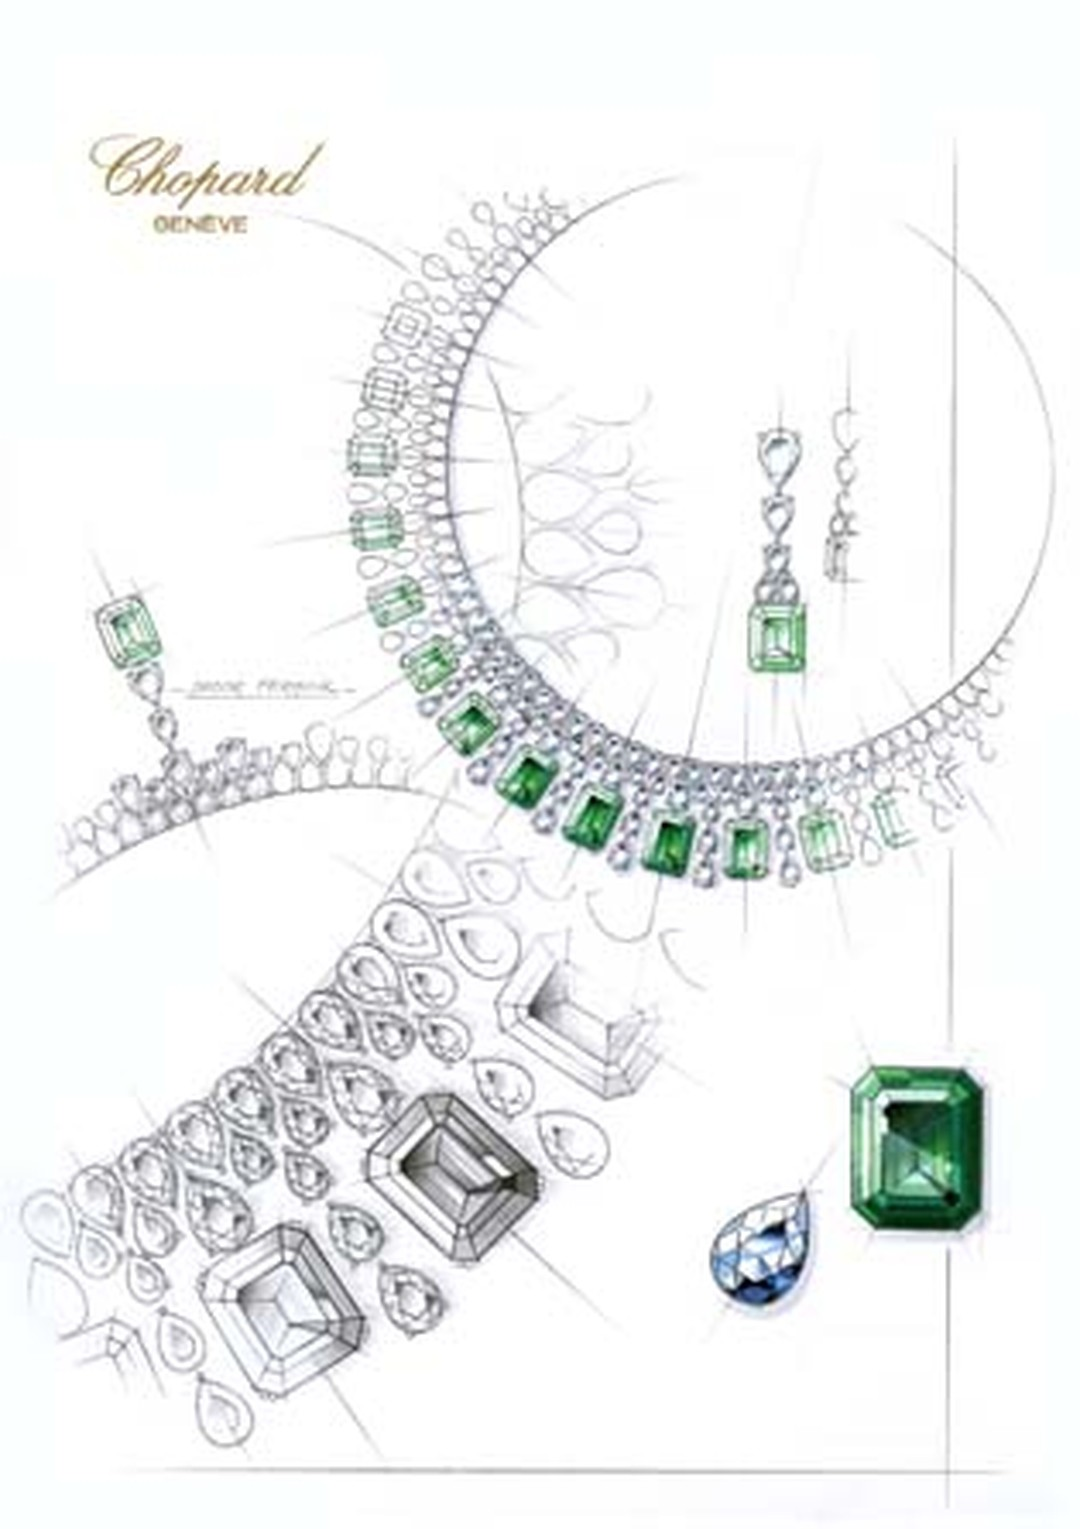 819356-1001 Sketch Emerald Necklace from the Red Carpet Collection 2013.jpg